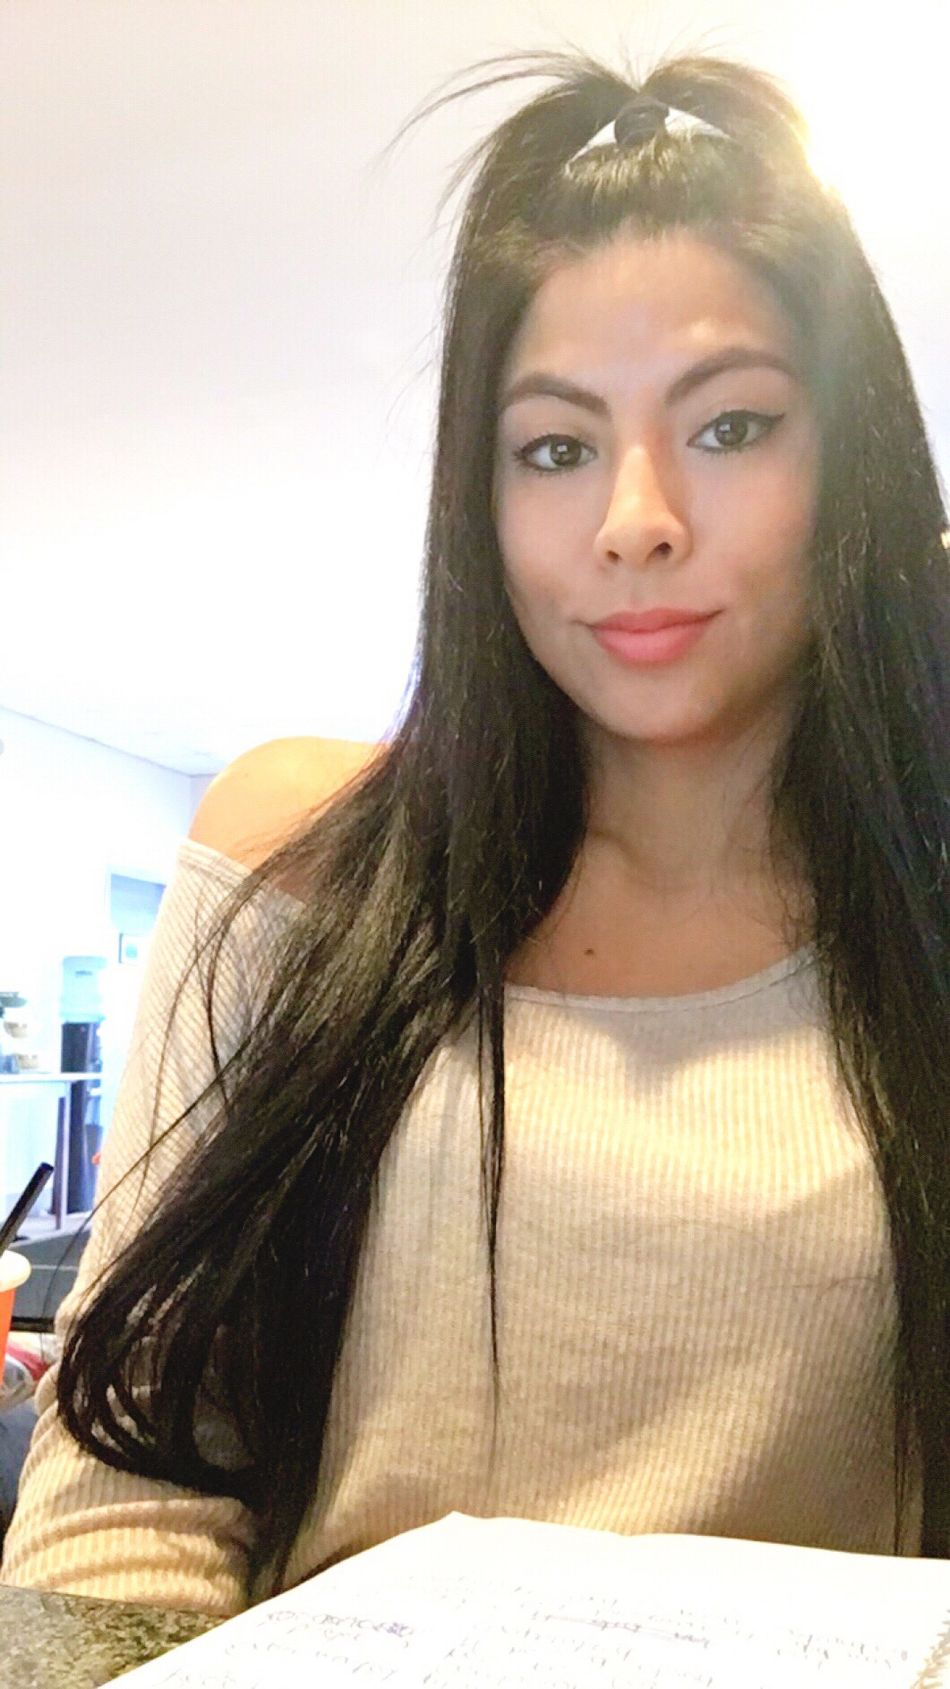 Me Latina Self Selfie ✌ Long Hair Cute Model NYC Val  Chilling Studying New To EyeEm Followme Like Follow Brown Eyes Makeup Hair Hairstyle Lips